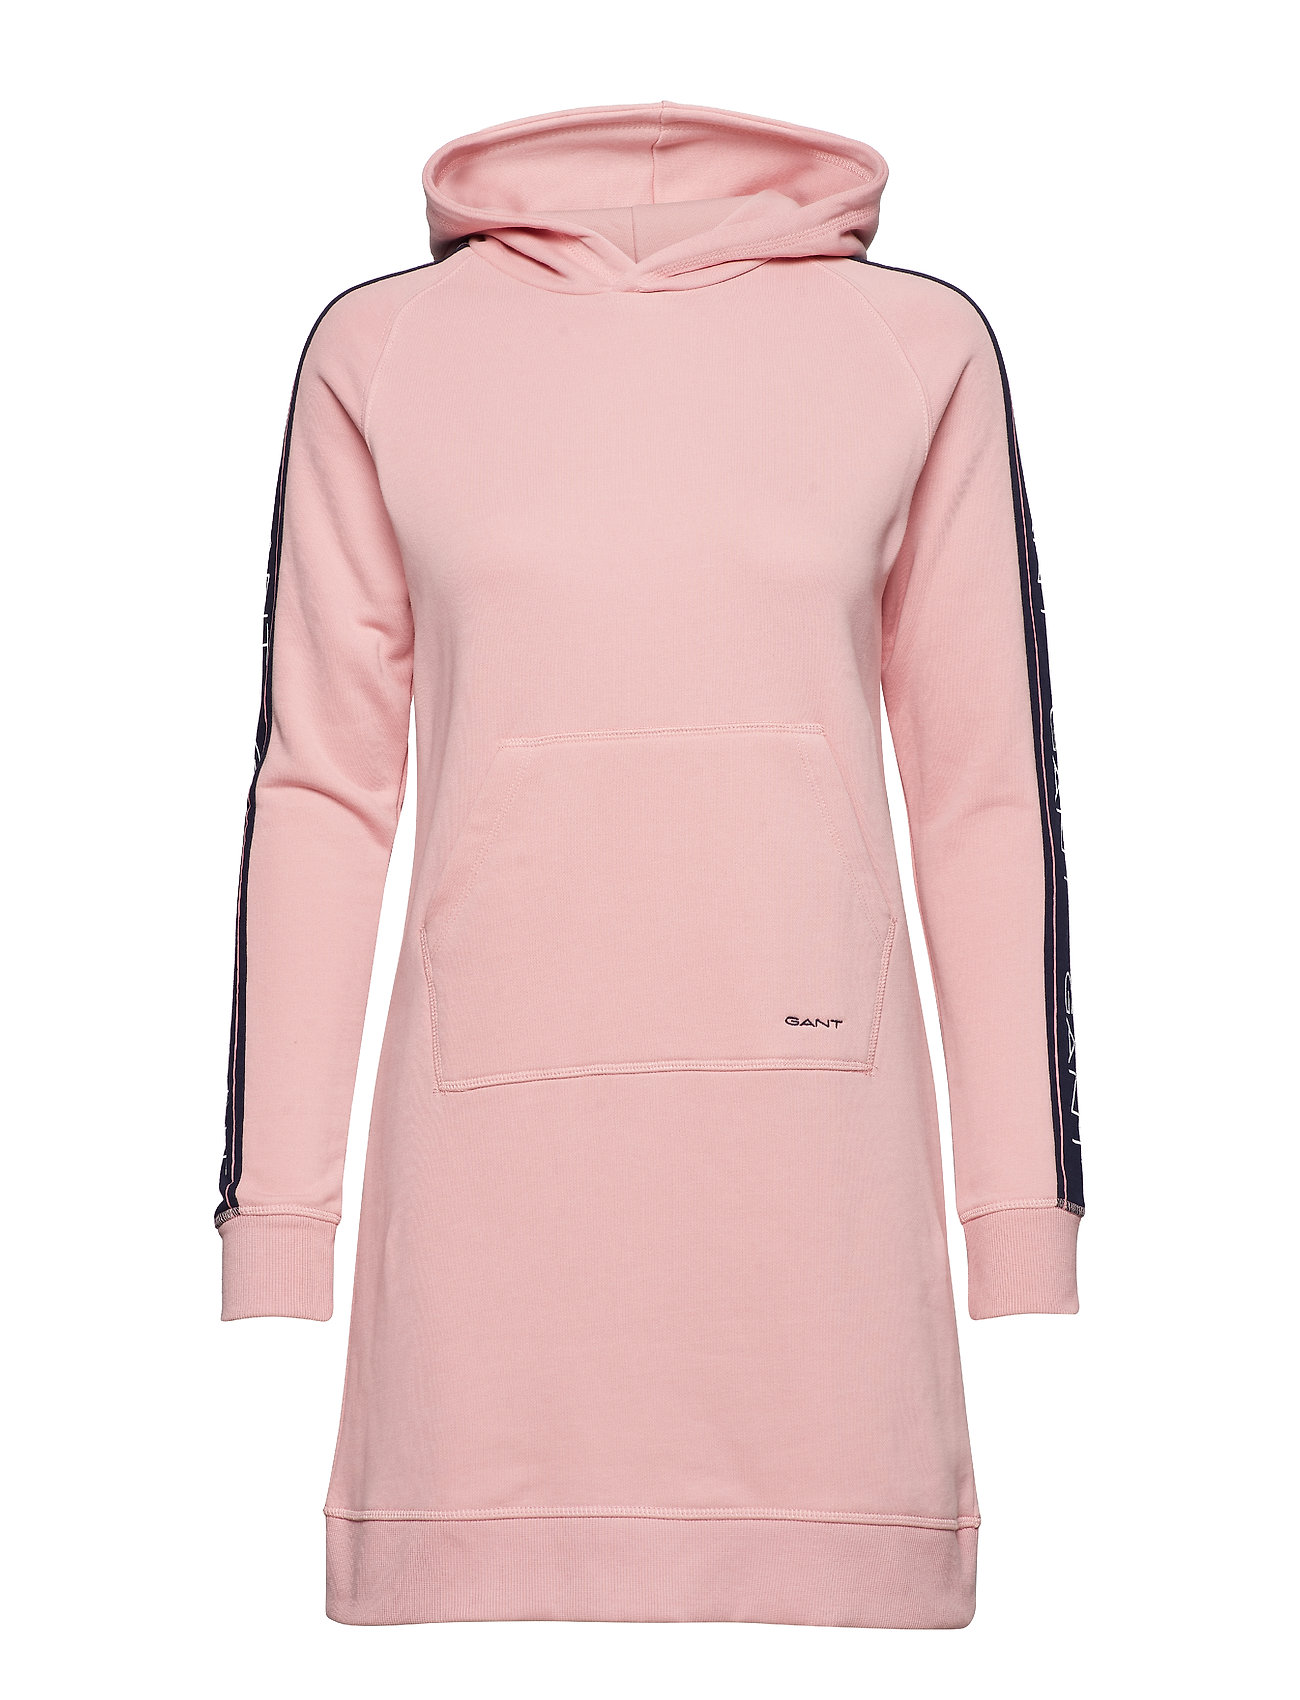 GANT D1.GANT ARCHIVE SWEAT HOODIE DRESS